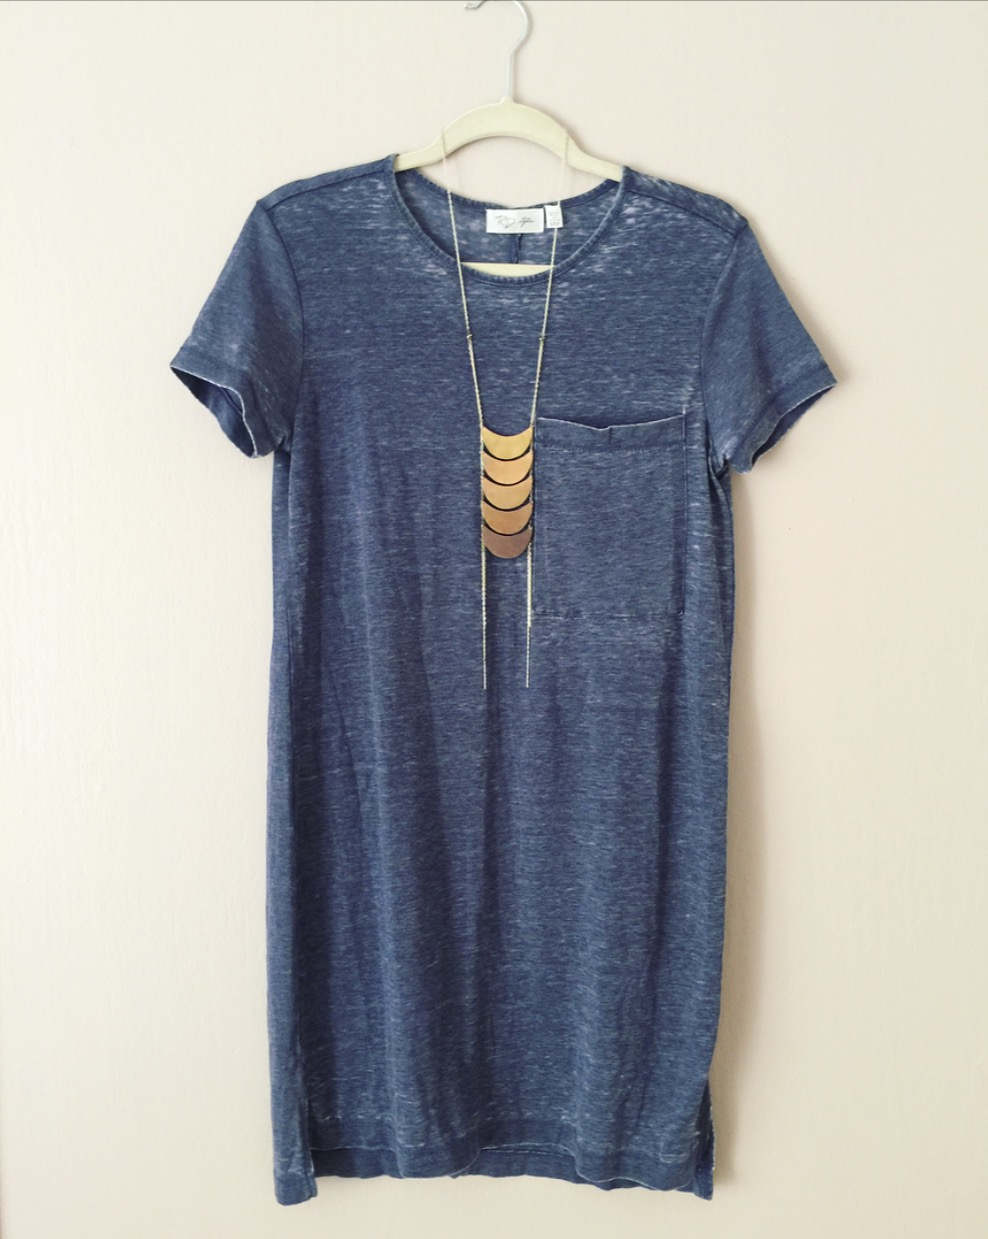 RD Style - Kel-T Shirt Dress from Stitch Fix - $58  (Necklace sold separtately, by Sahlia Jewelry in Portland, OR)